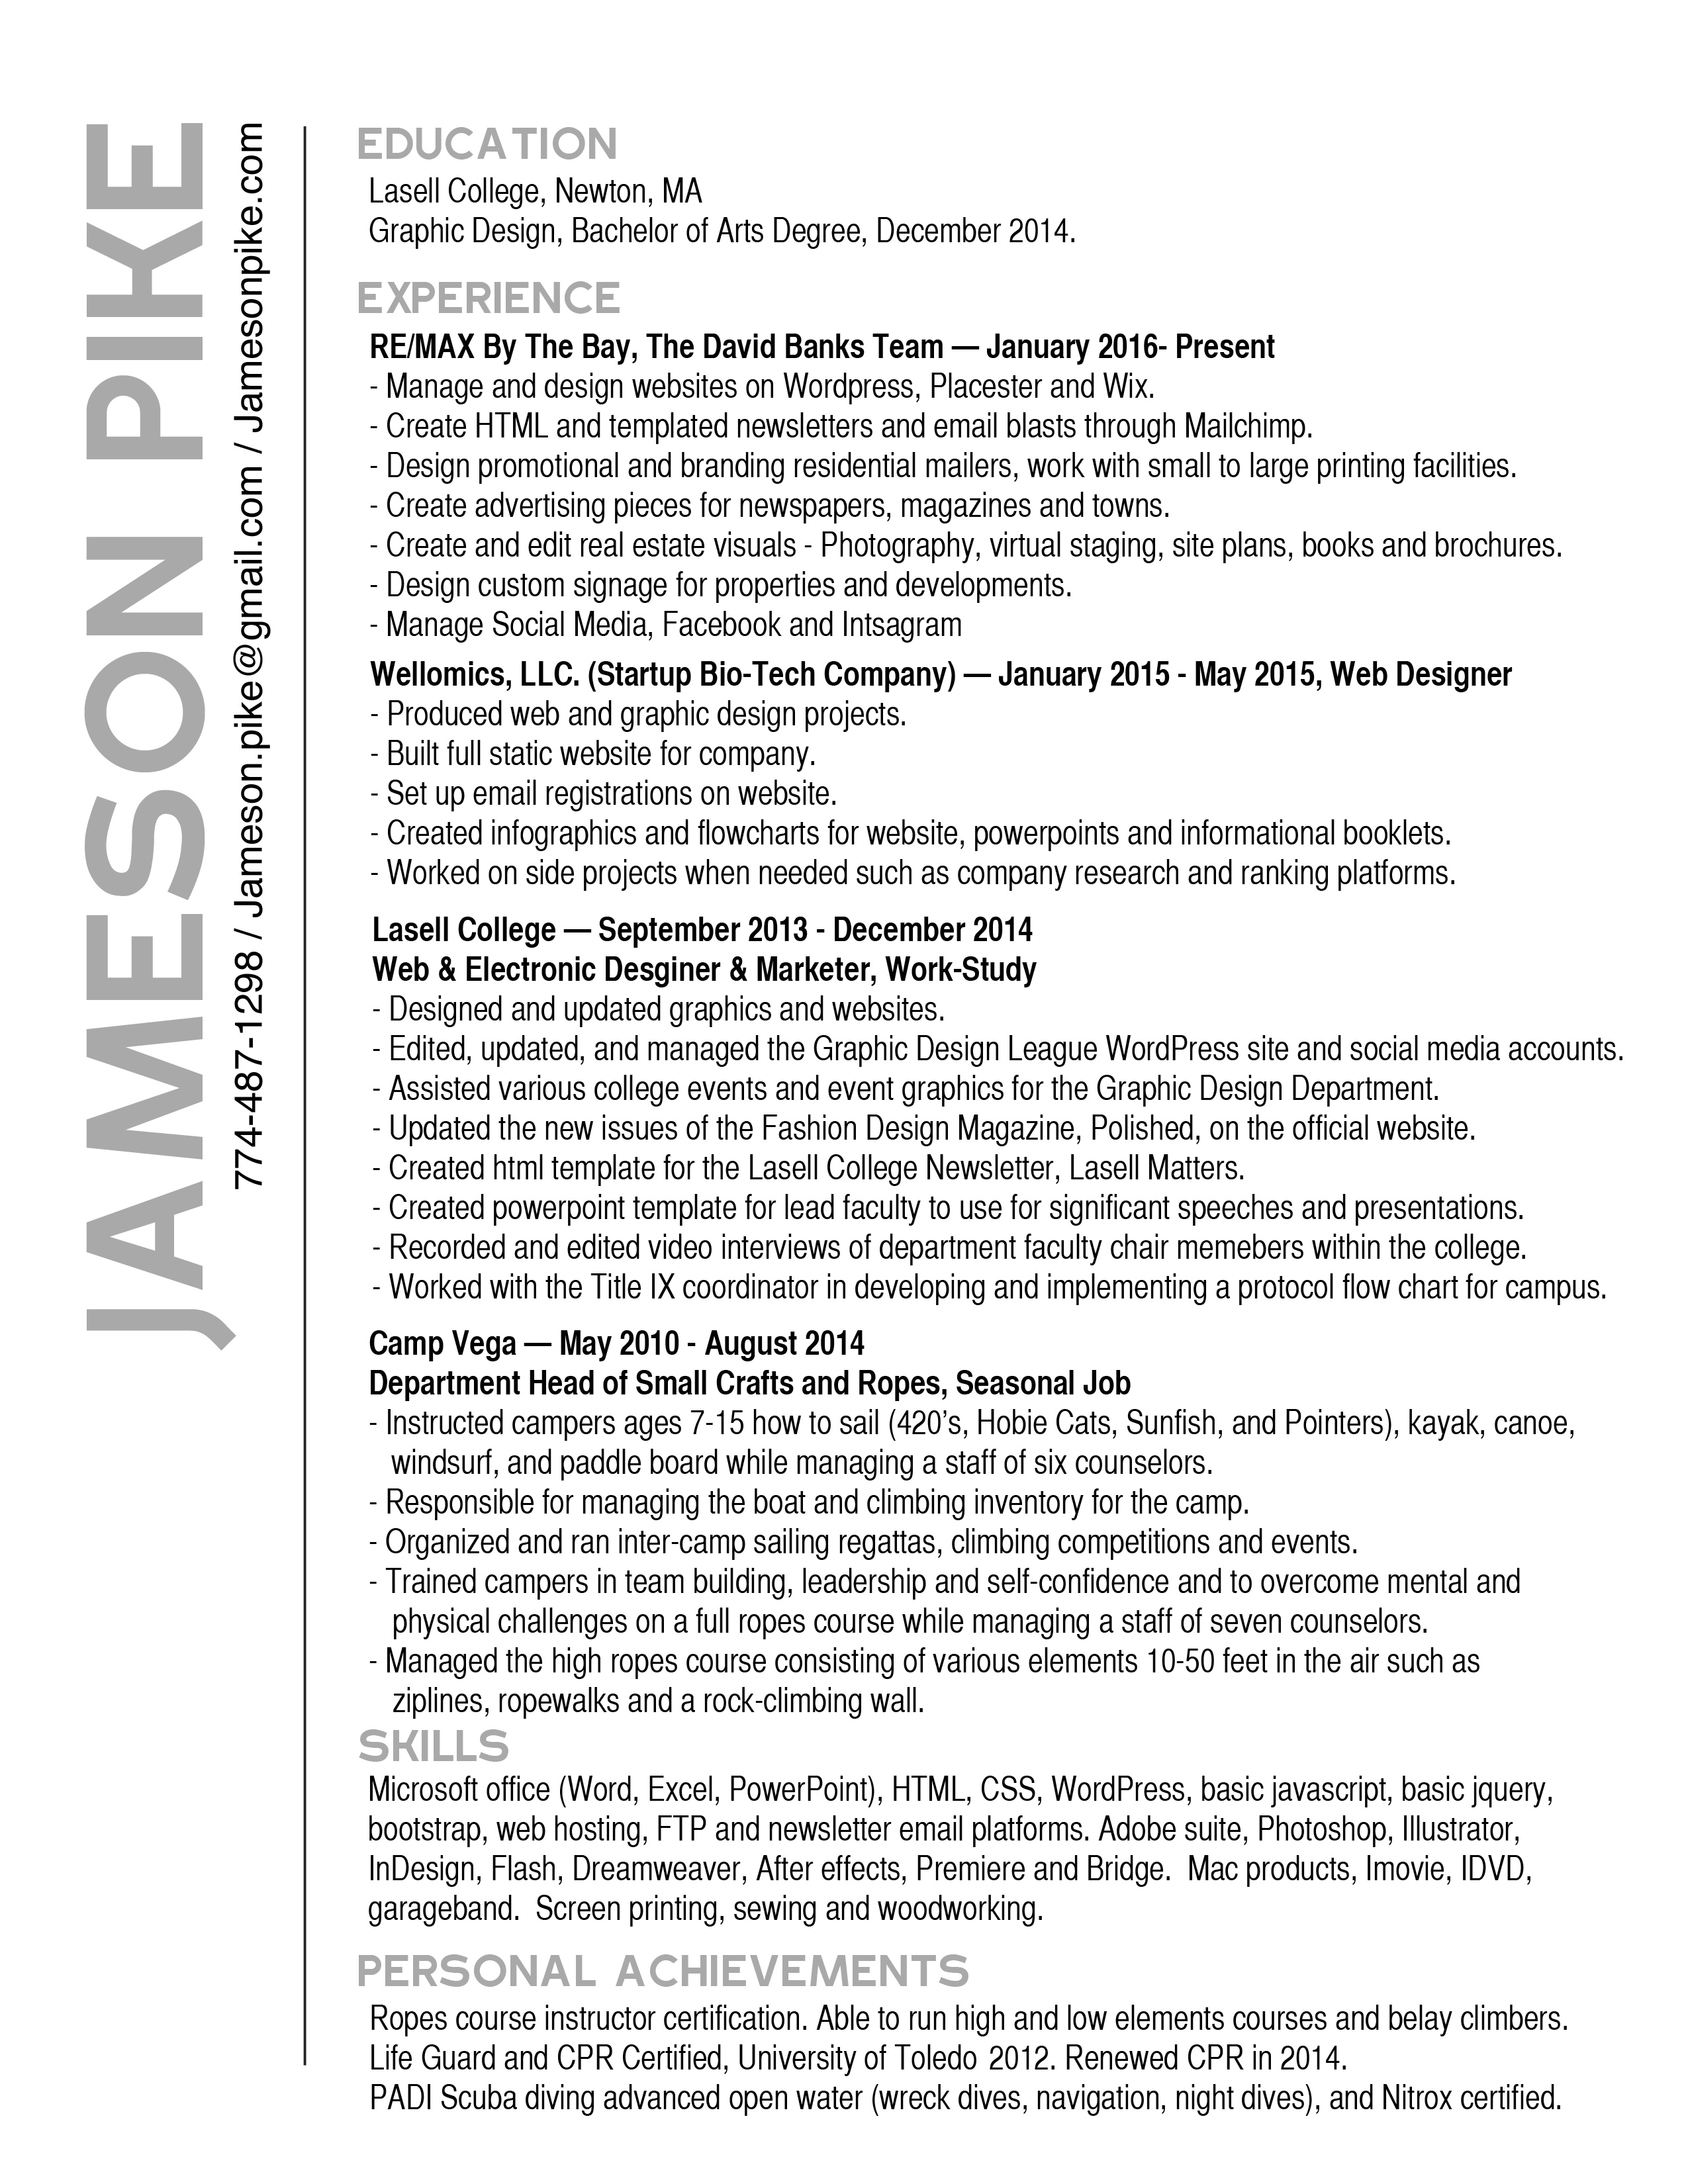 Stunning cpr certification resume images professional resume jameson pike 1betcityfo Choice Image